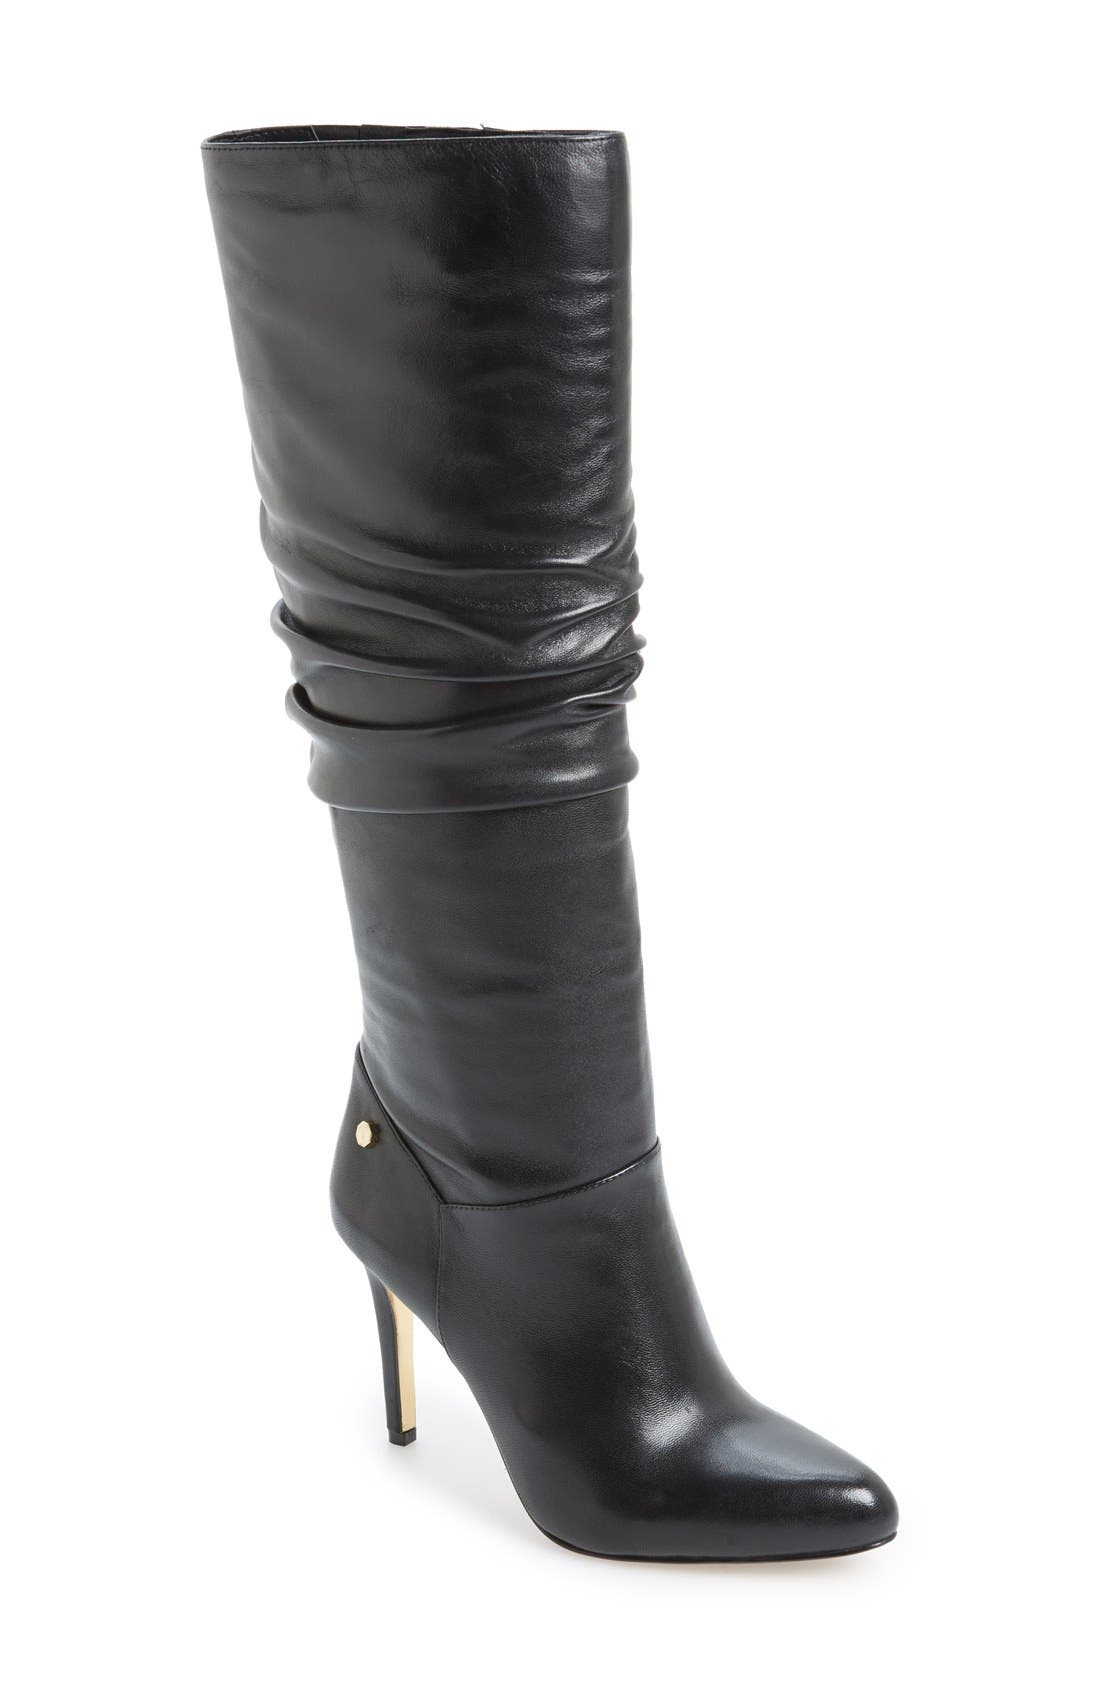 Main Image - Louise et Cie 'Sallie' Tall Boot (Women)